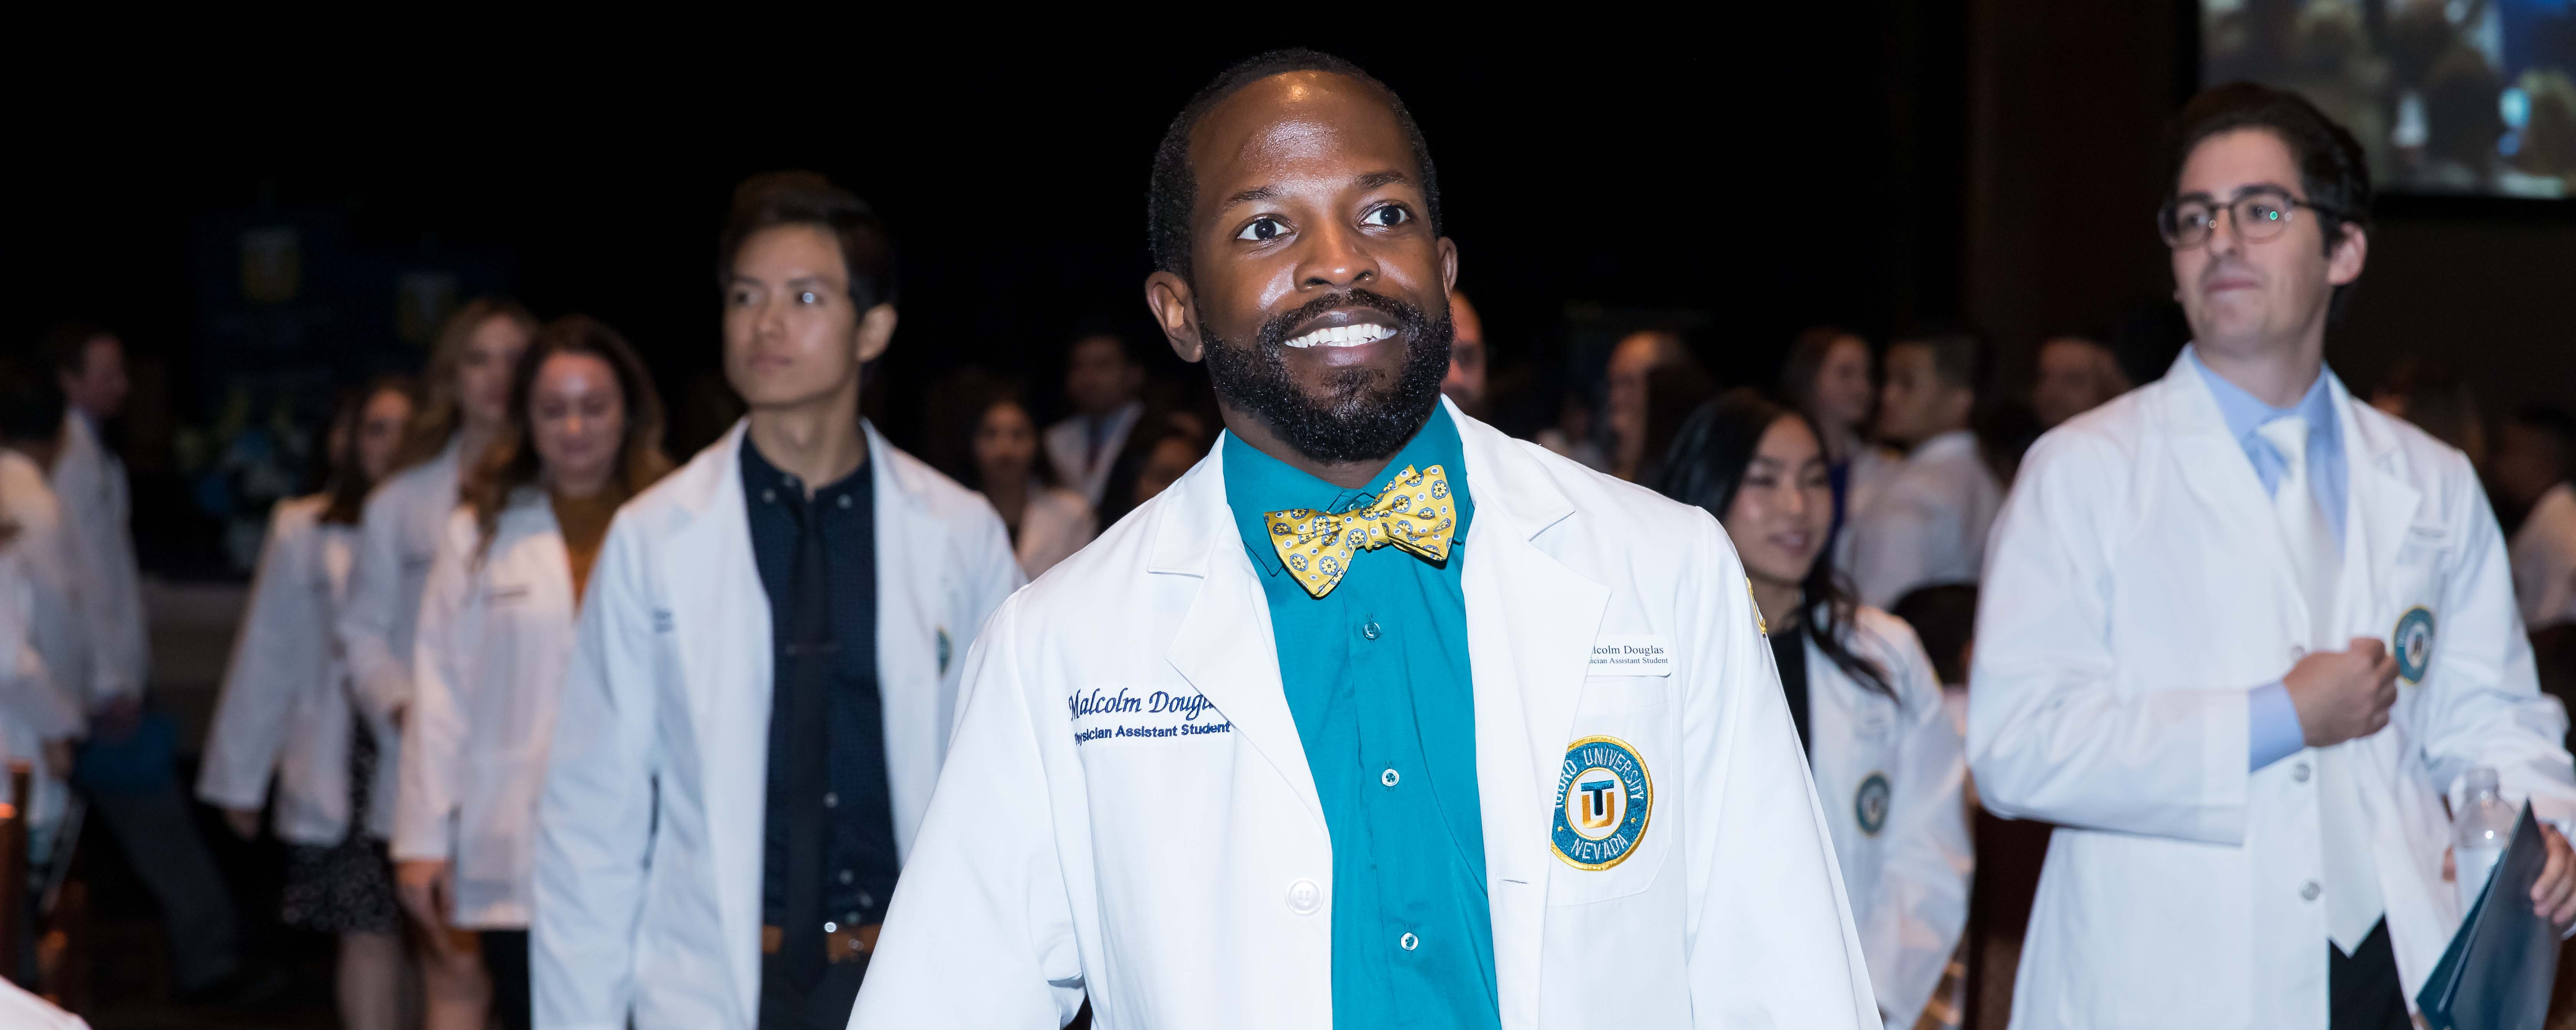 Malcolm Douglas, School of Physician Assistant Studies